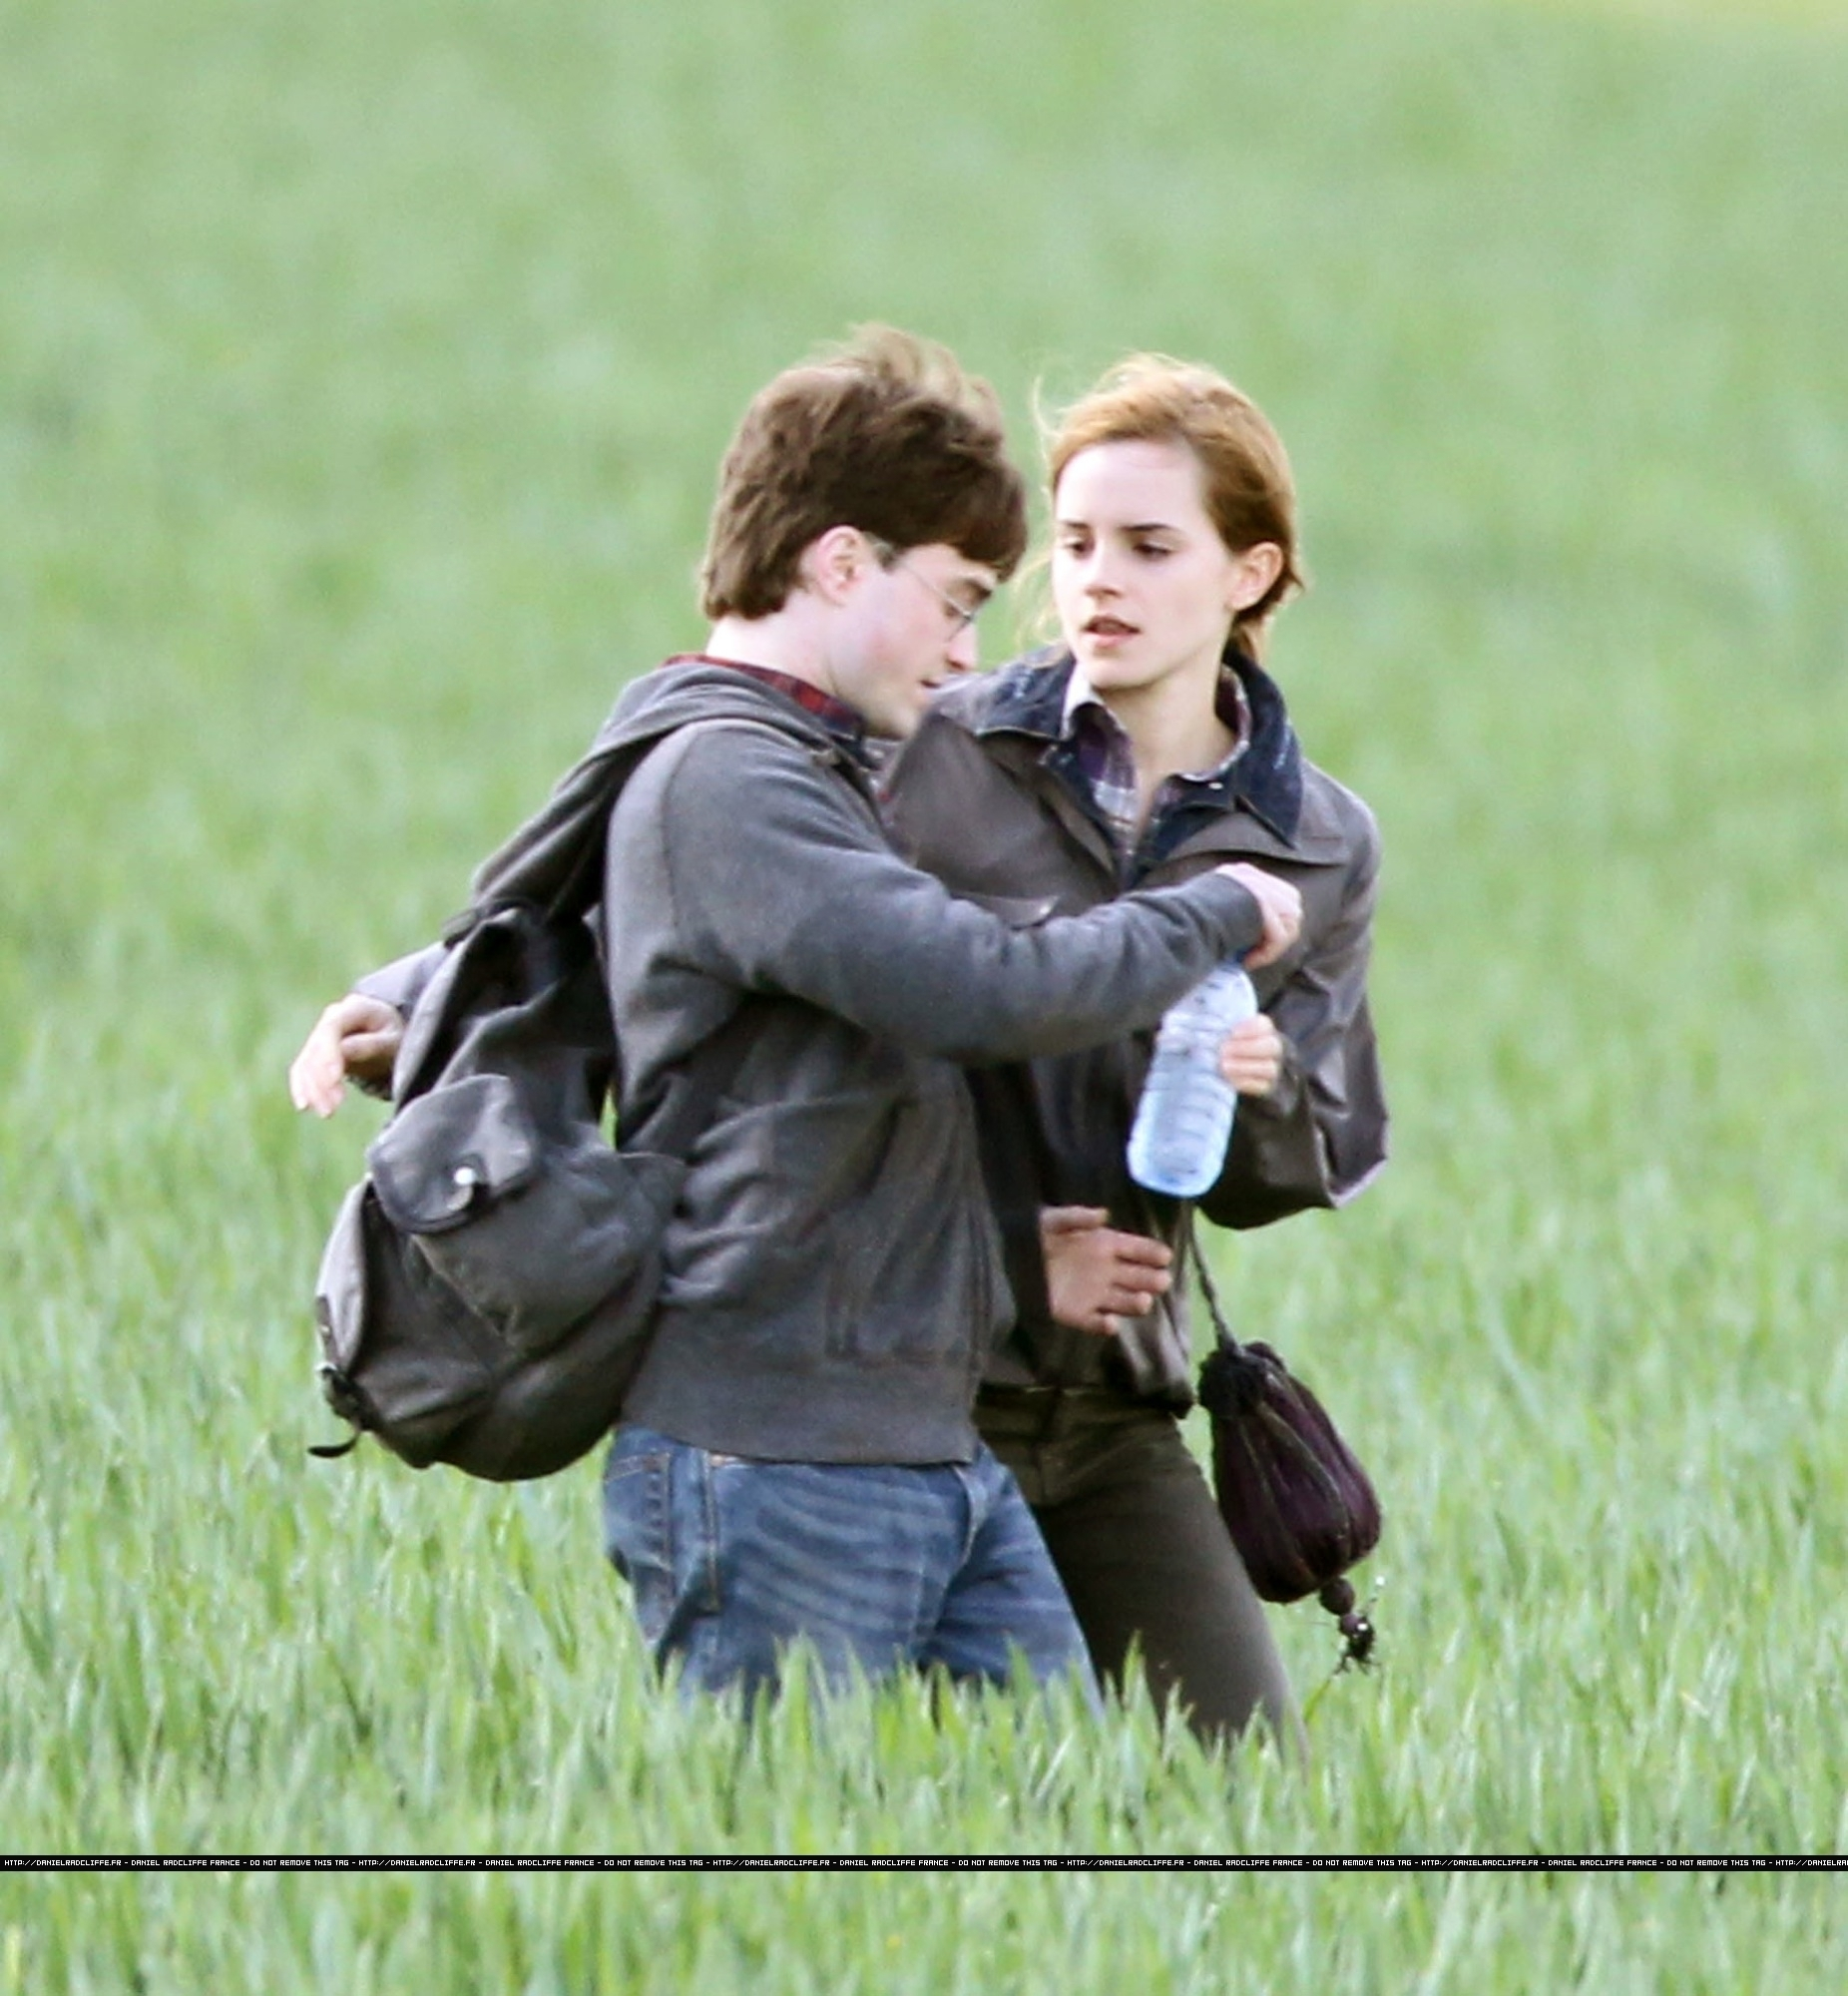 Harry Potter and the Deathly Hallows Movies images Daniel and Emma behind the scenes HD wallpaper and background photos